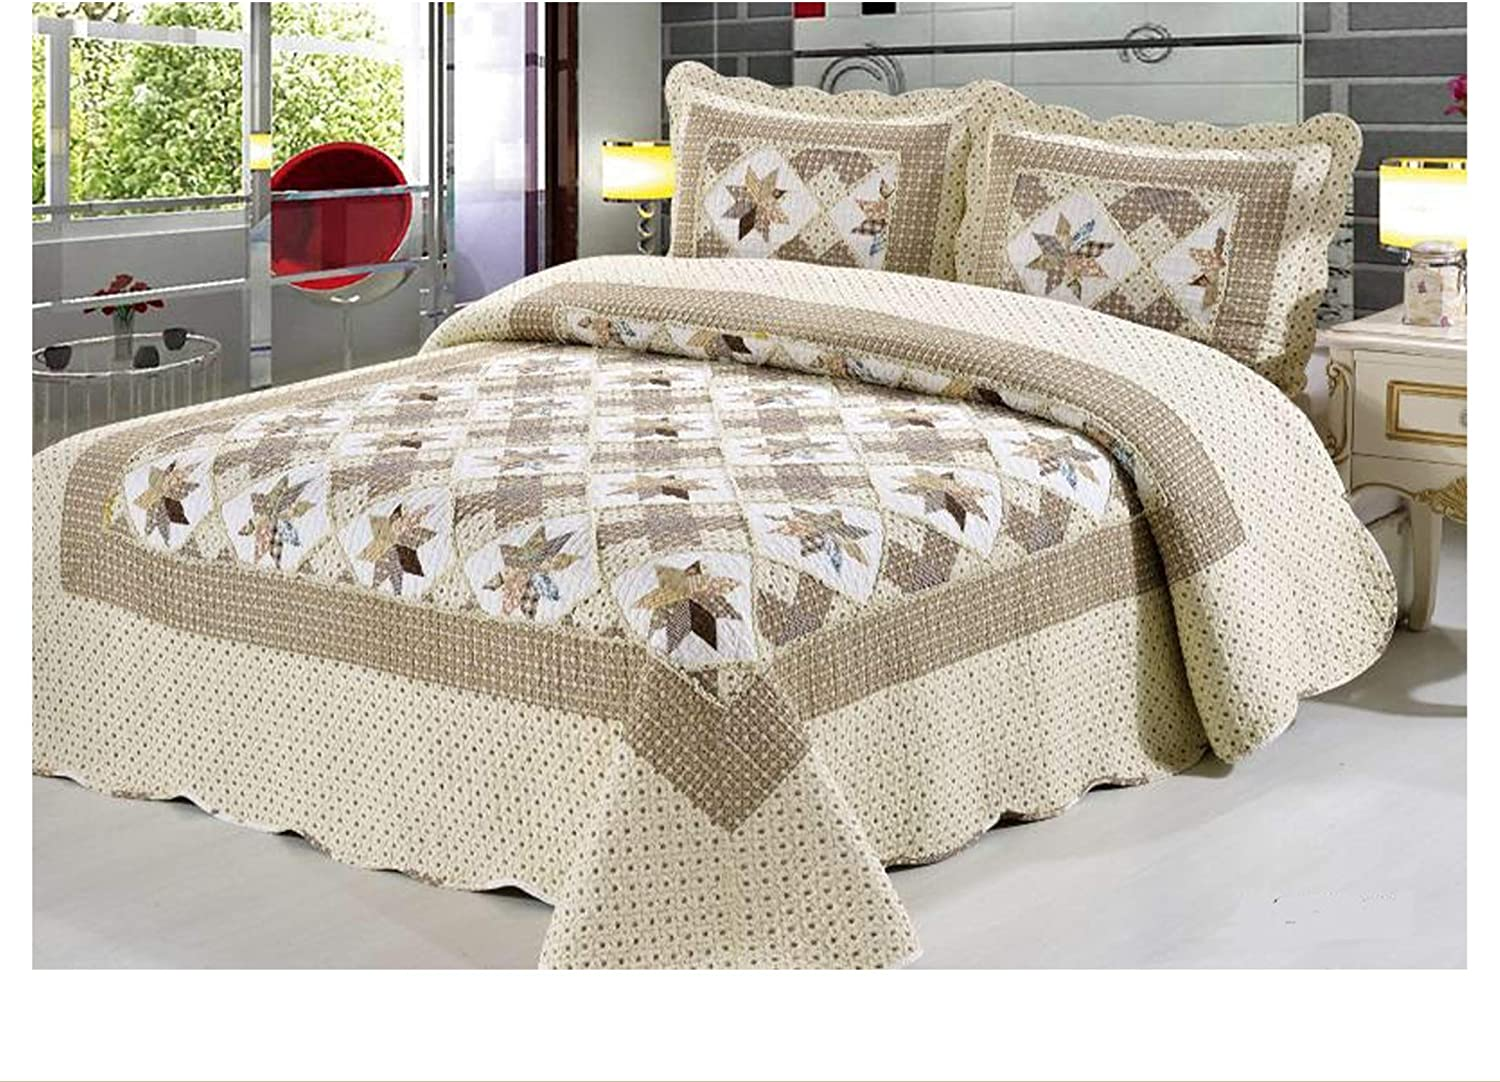 Double New 2020 100/% Quilted Bedding Set Patchwork Throw Embossed Vintage 3 PC Set Bedspreads GS 8039, Double King Comforter Throw Set Include 2 Pillow Shams